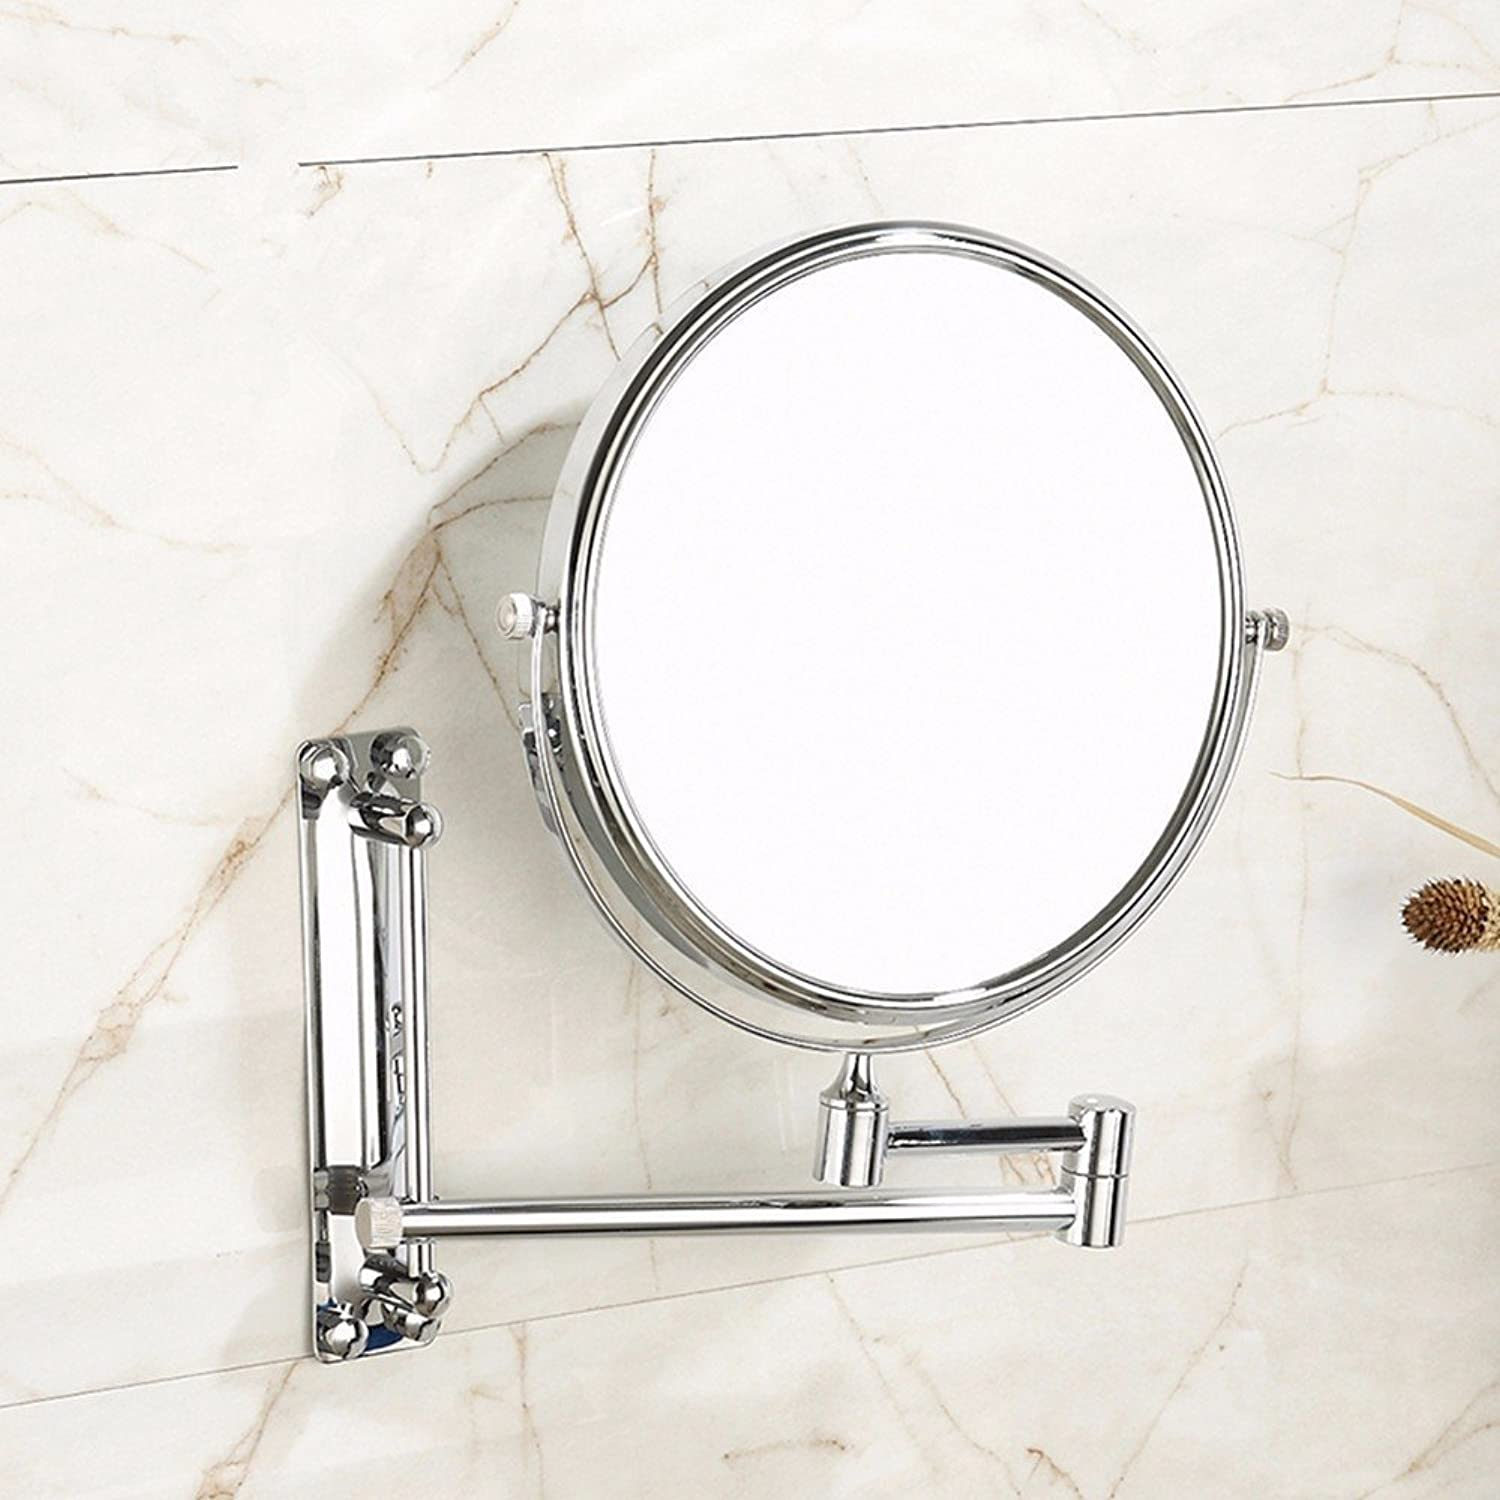 Copper folded against the wall type cosmetology mirror European-style bathroom vanity mirror wall mount makeup mirror-8 inch